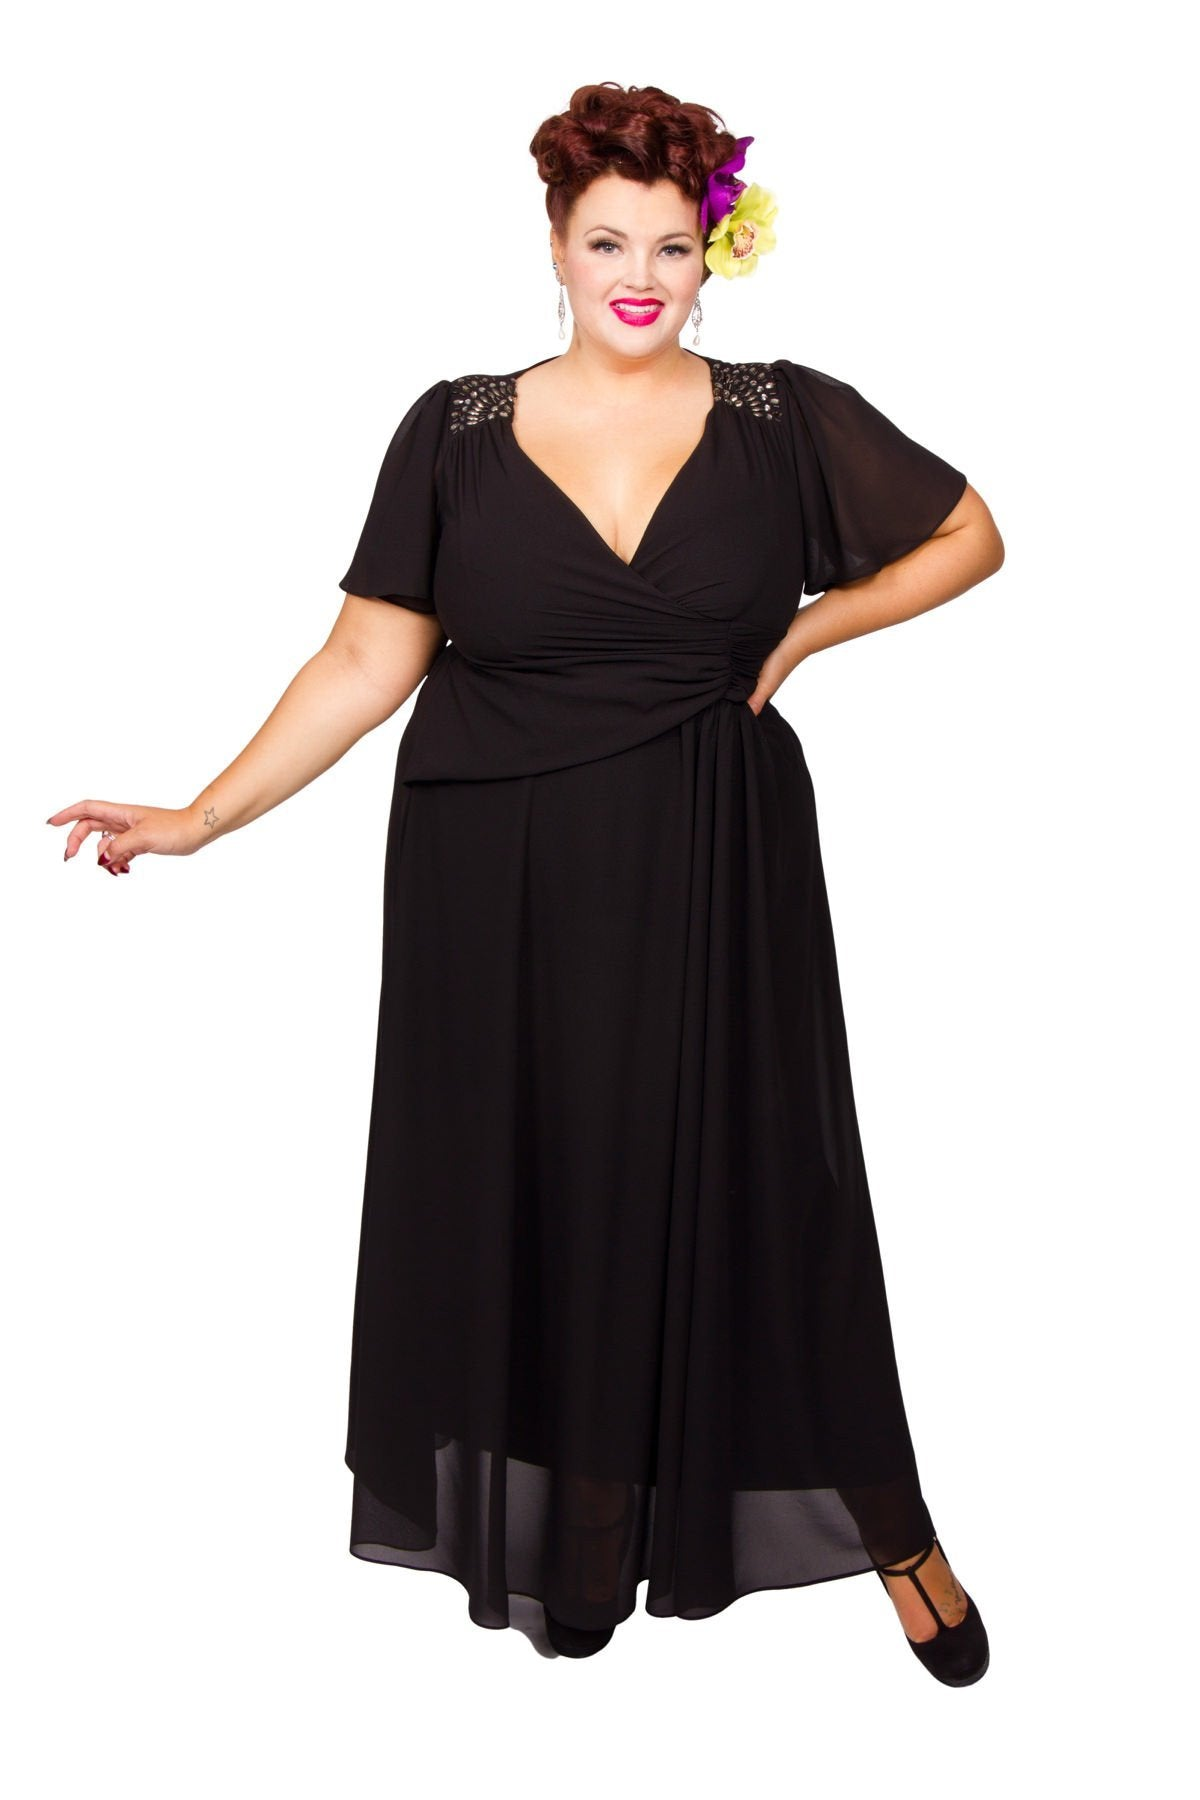 Vintage Evening Dresses and Formal Evening Gowns Embellished Shoulder Wrap Gown - Black  26 £80.00 AT vintagedancer.com